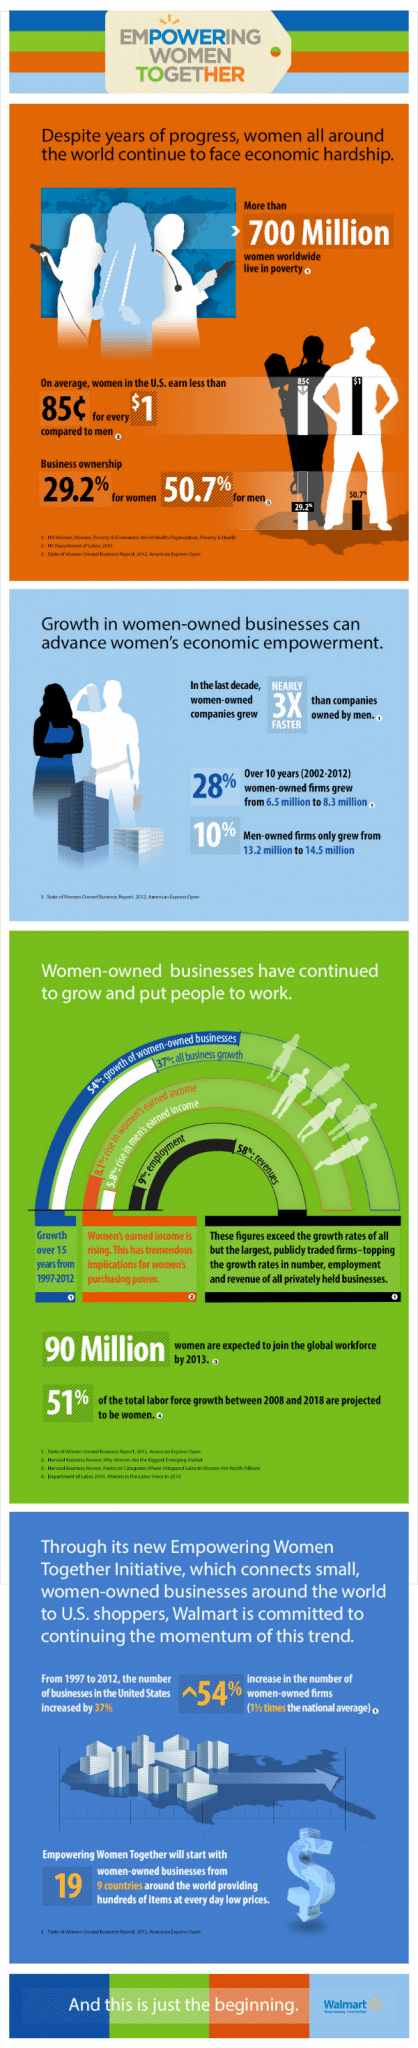 Walmart Empowering Women Together Program Infographic